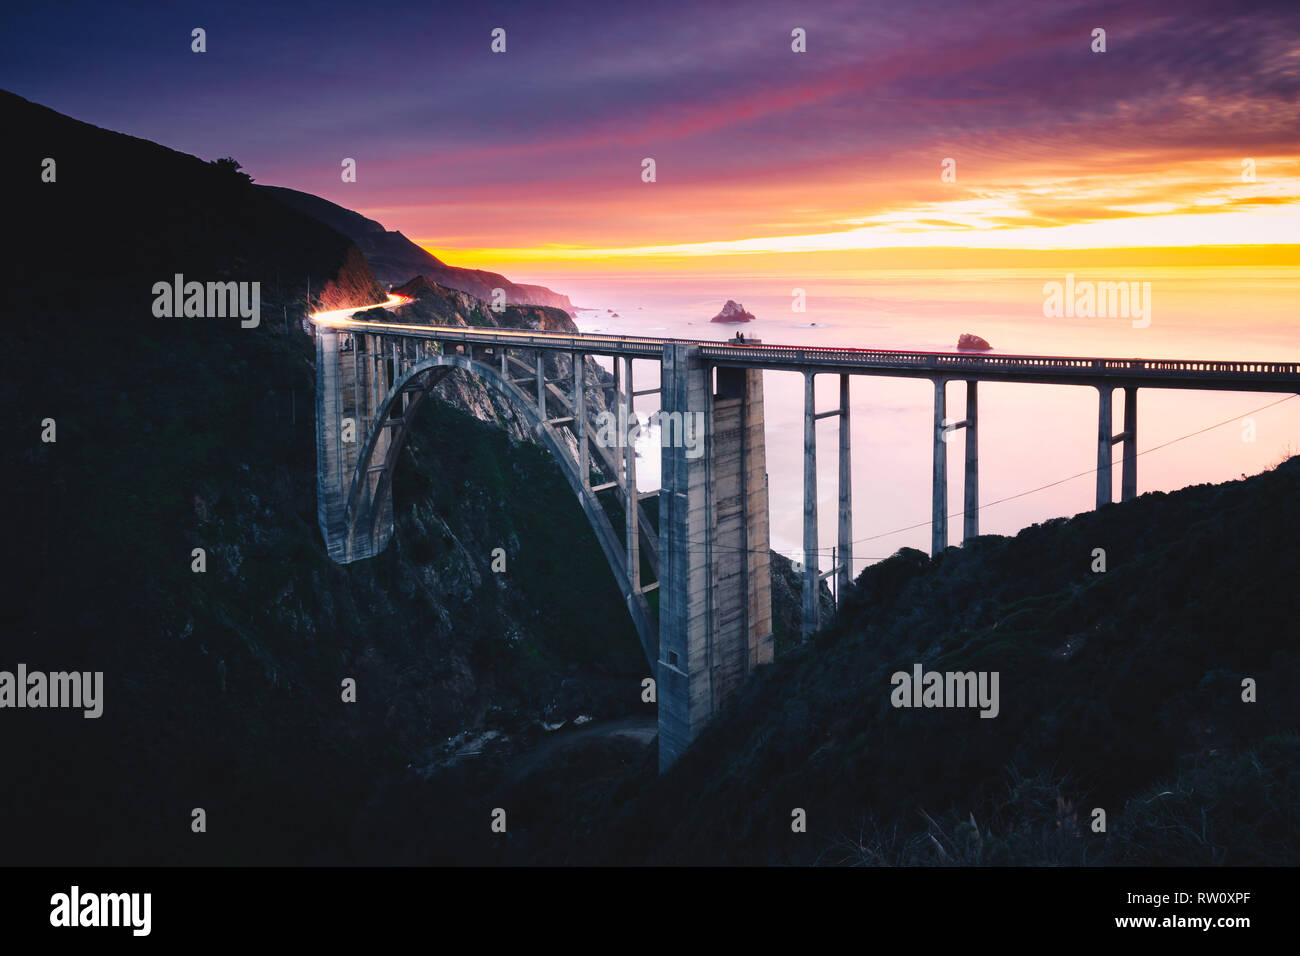 Bixby Creek Bridge with Colorful Sunset and Car Light Trails, Big Sur, CA - Stock Image